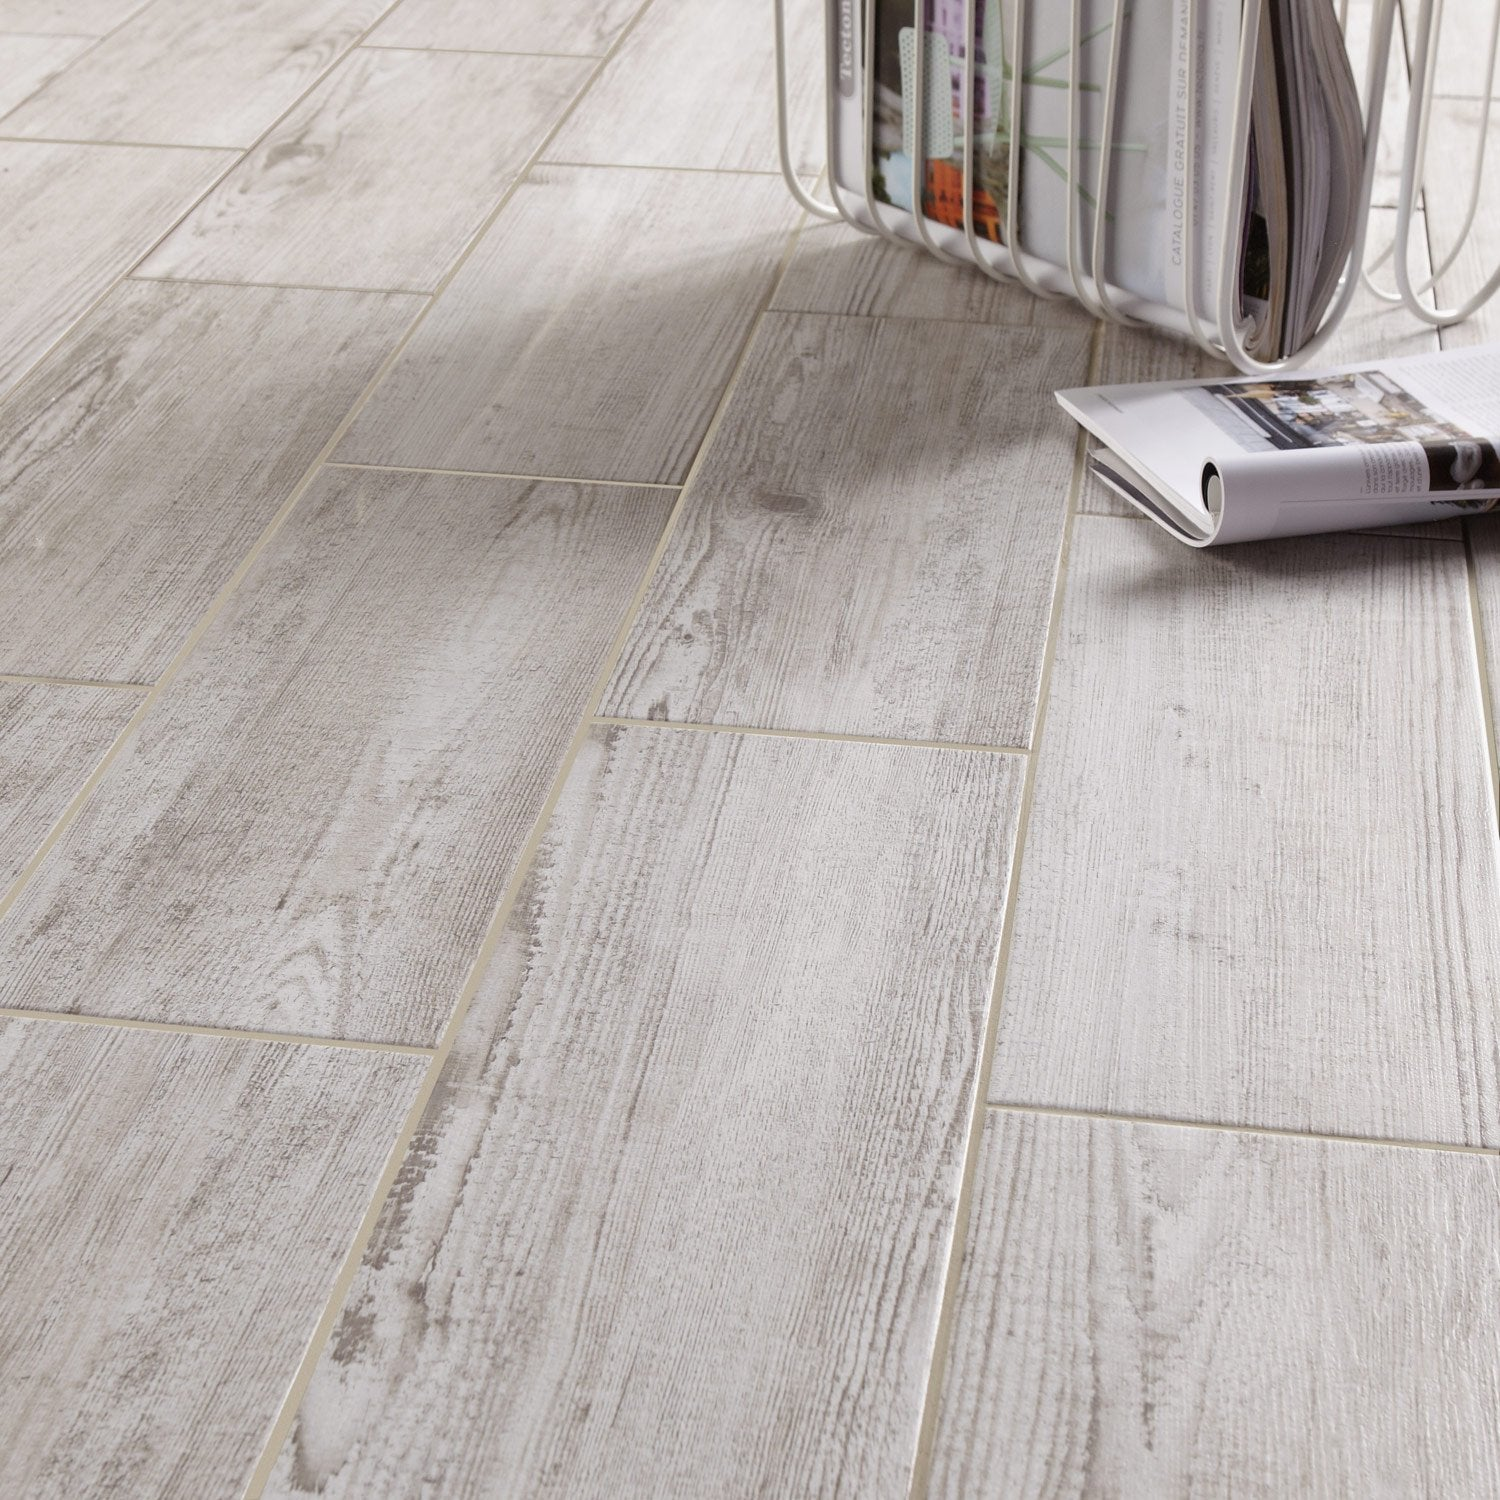 Carrelage bois leroy merlin - Carrelage salon leroy merlin ...